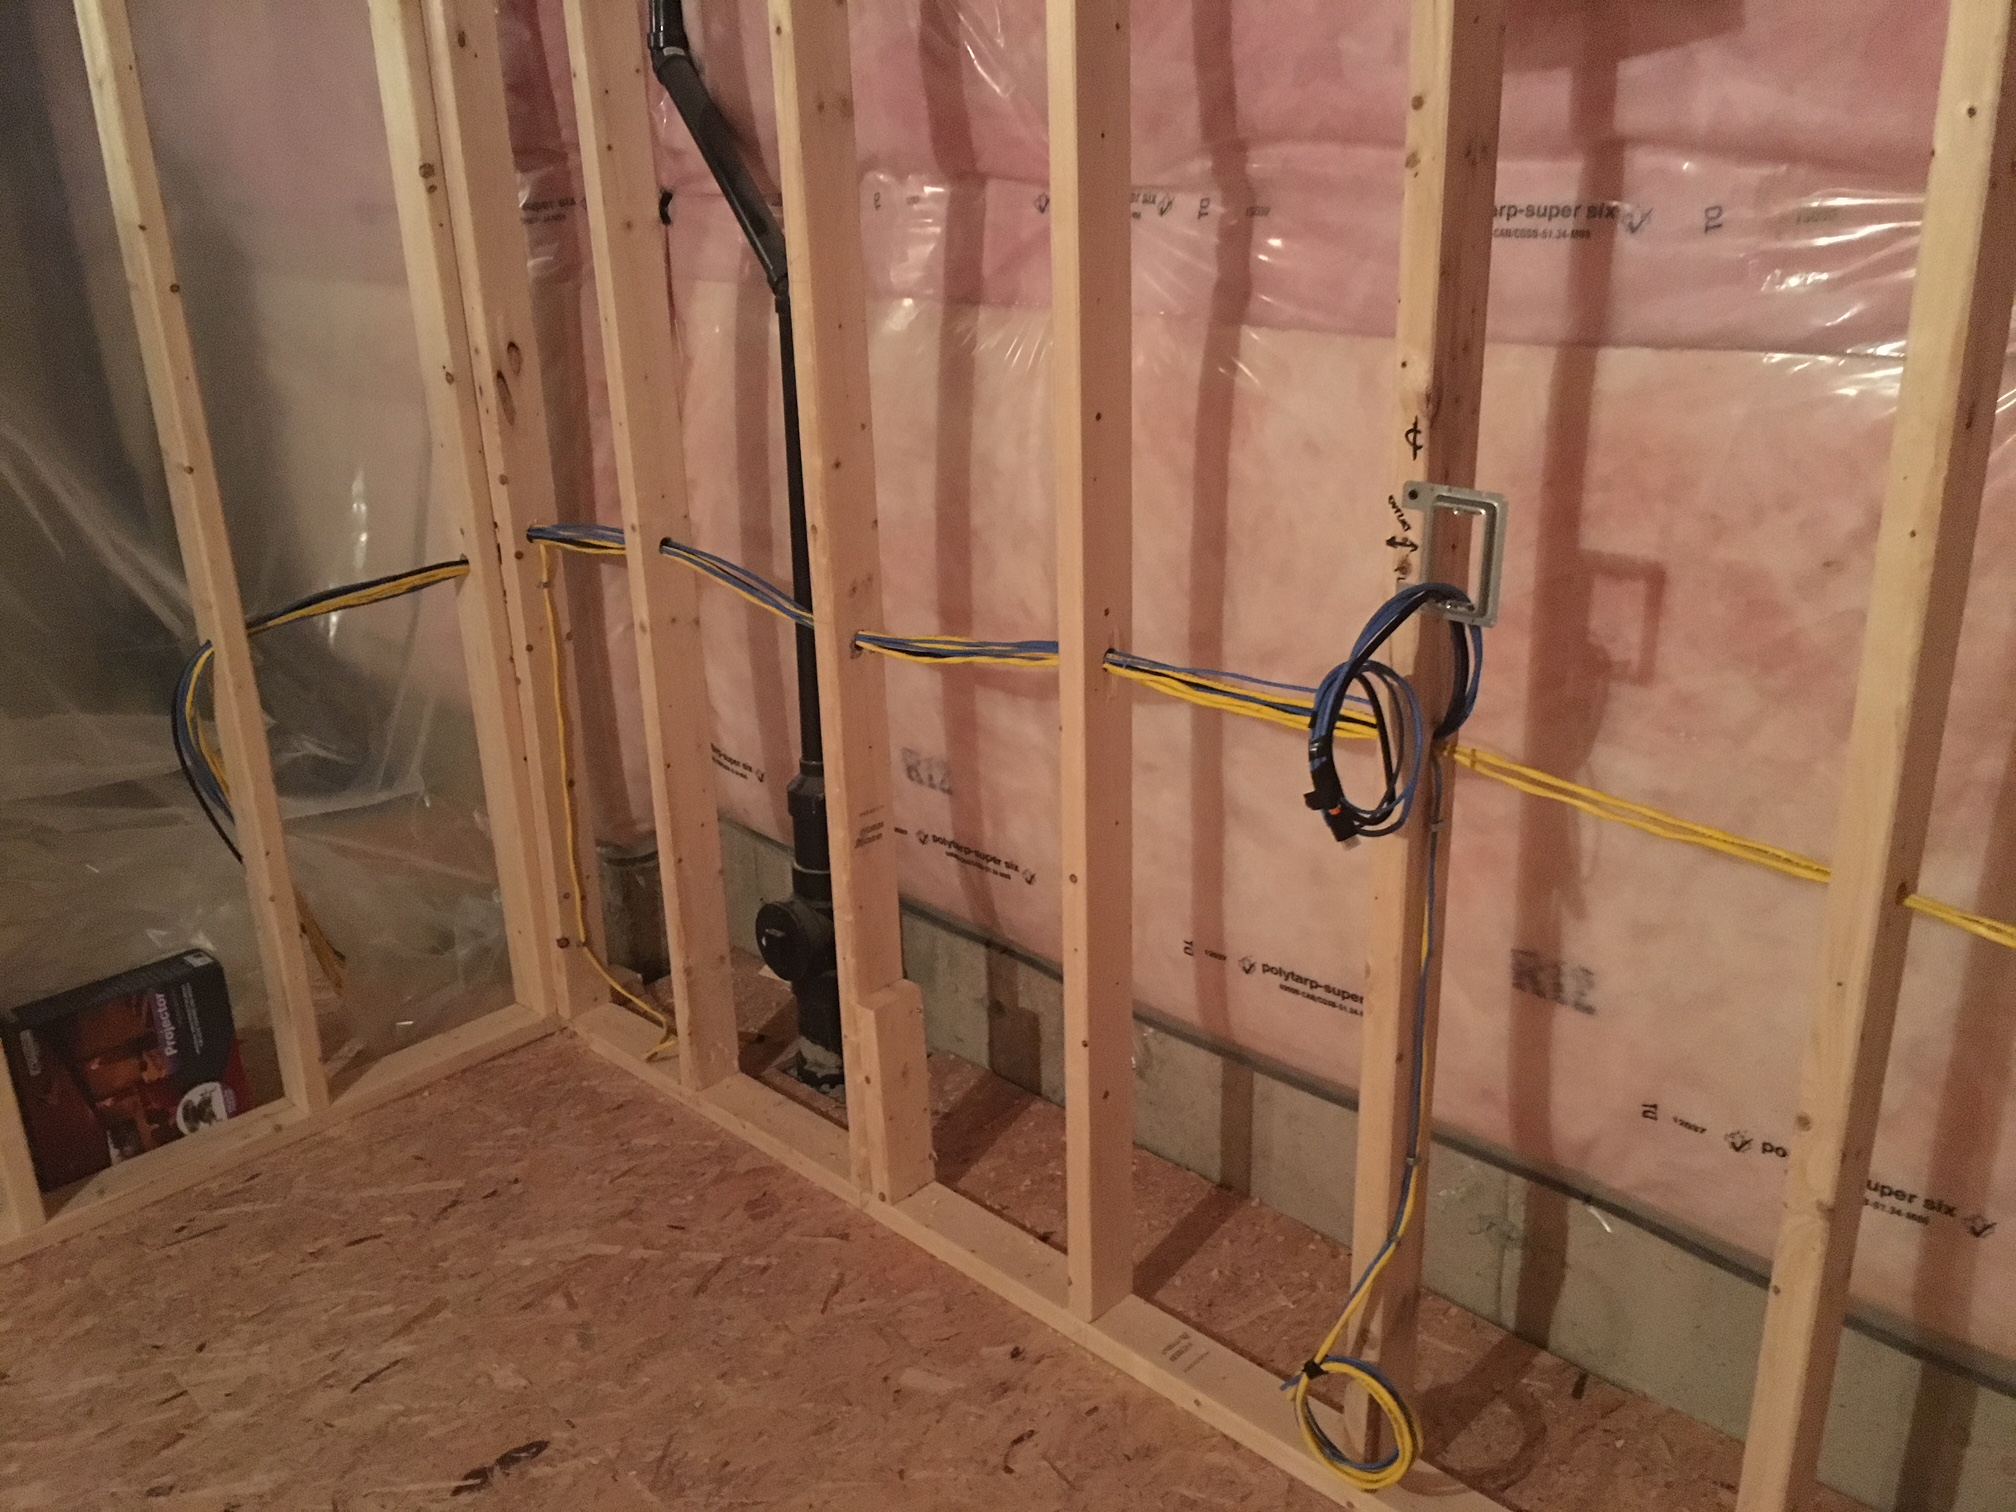 front wall wiring.JPG